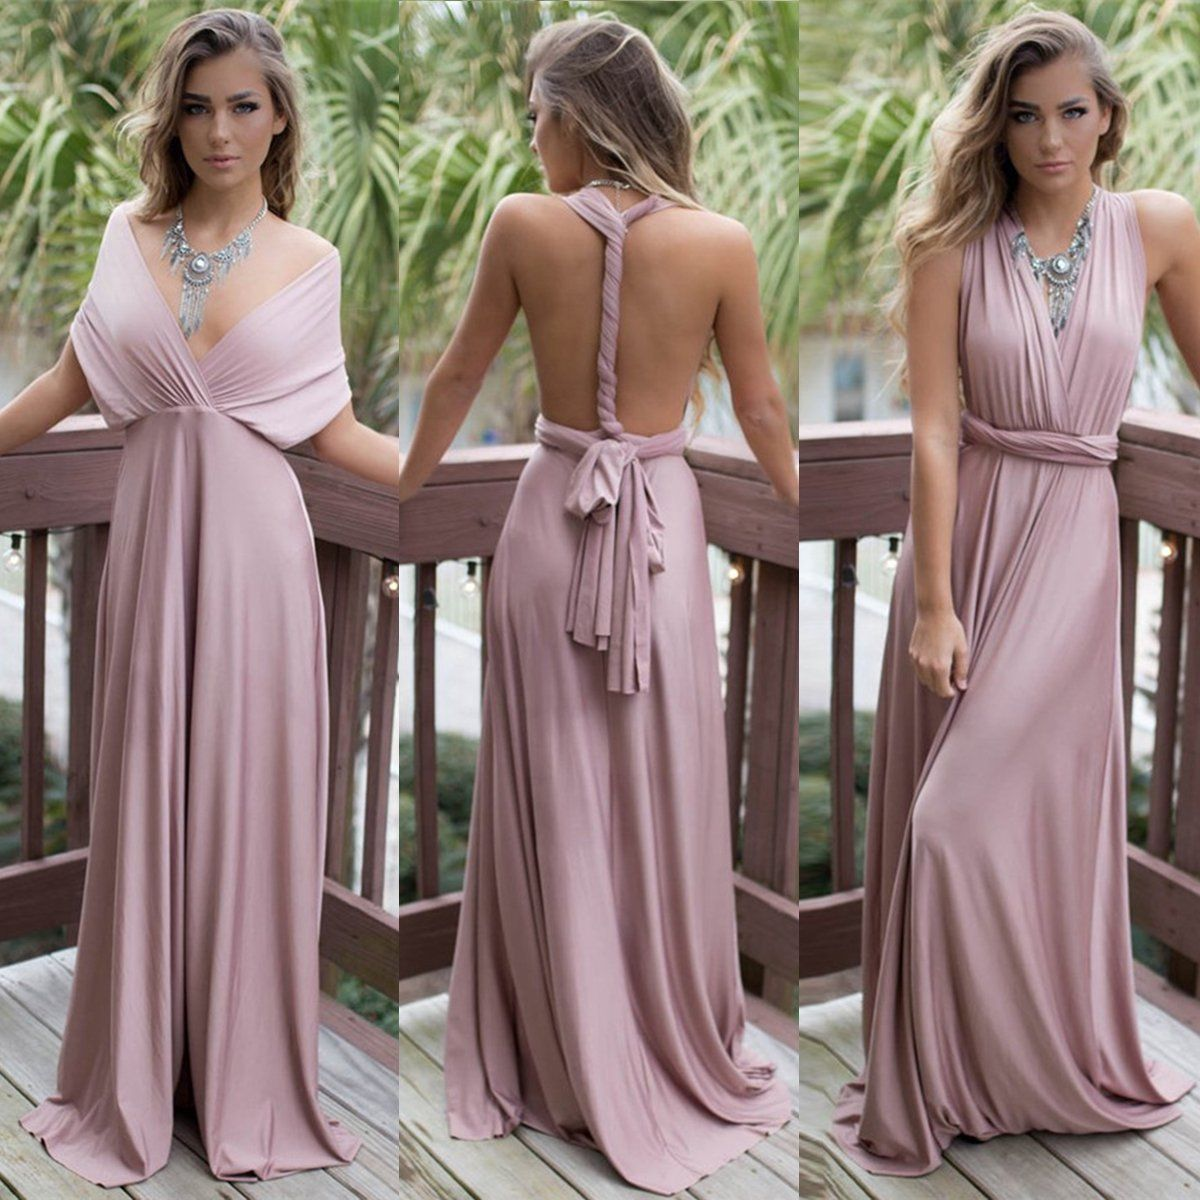 Women long formal bridesmaid dress party gown prom evening dress women long formal bridesmaid dress party gown prom evening dress pregnant dress ombrellifo Images